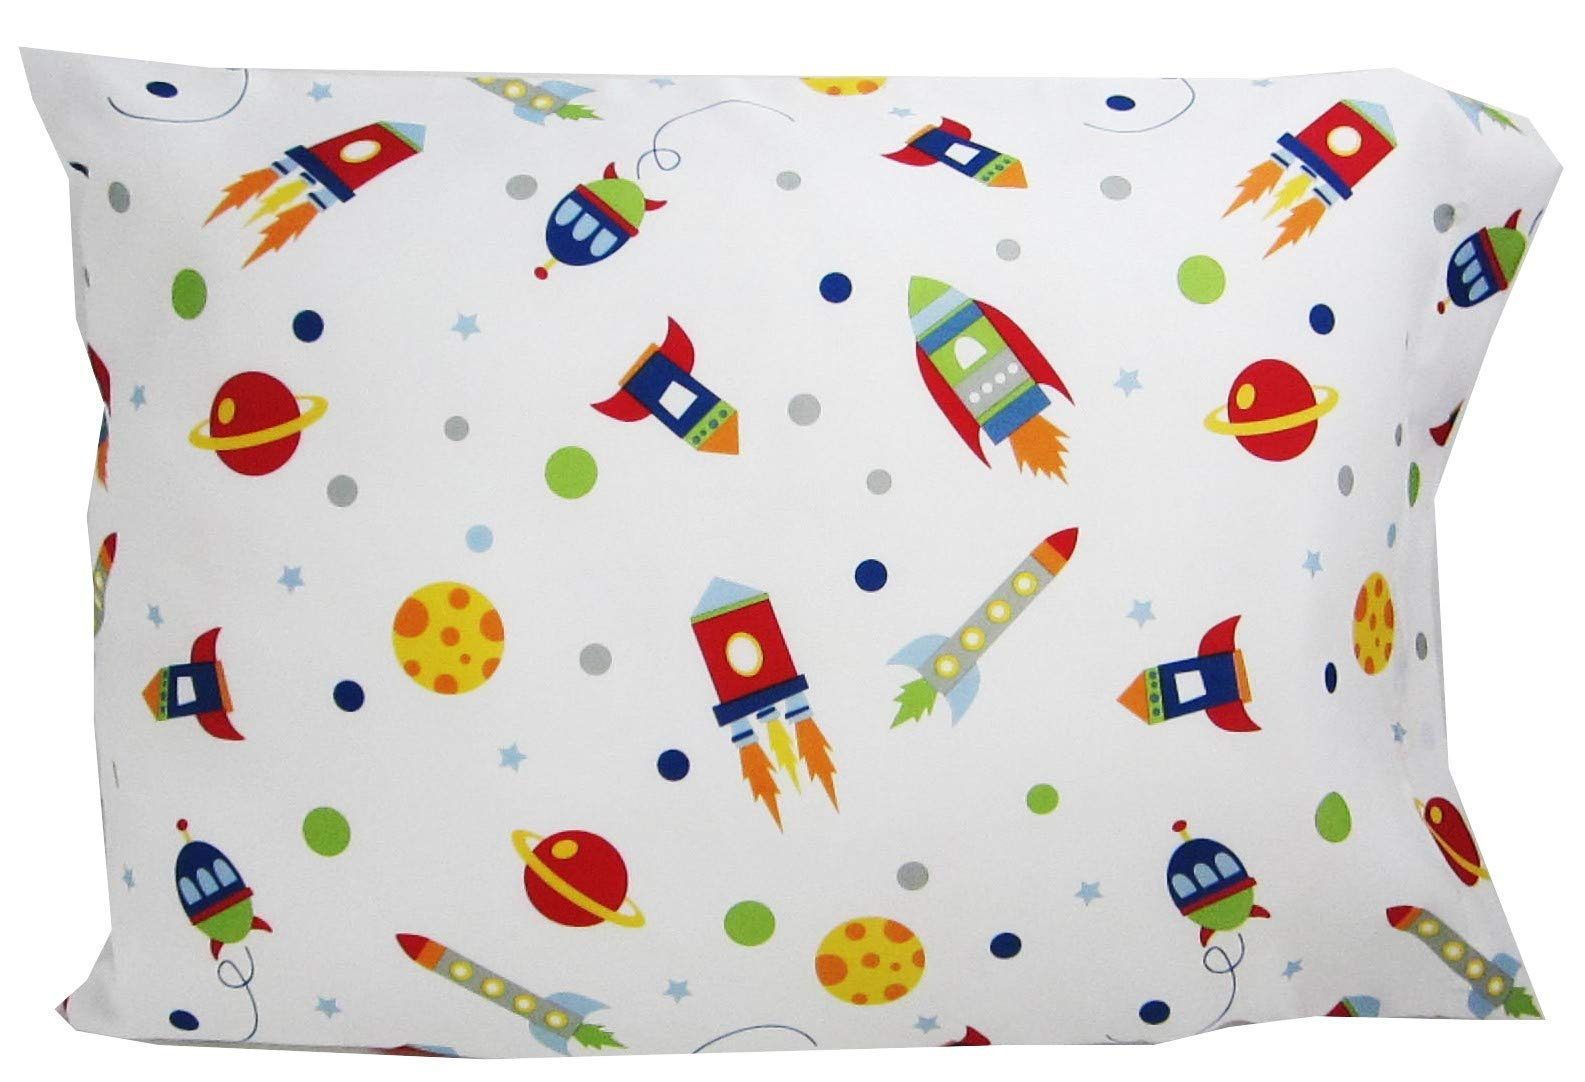 Toddler Pillowcase Kids Space Size: 16x20 Fits Size 14x19 Pillow Boys Girls Kids Bedding by WMS (Image #1)